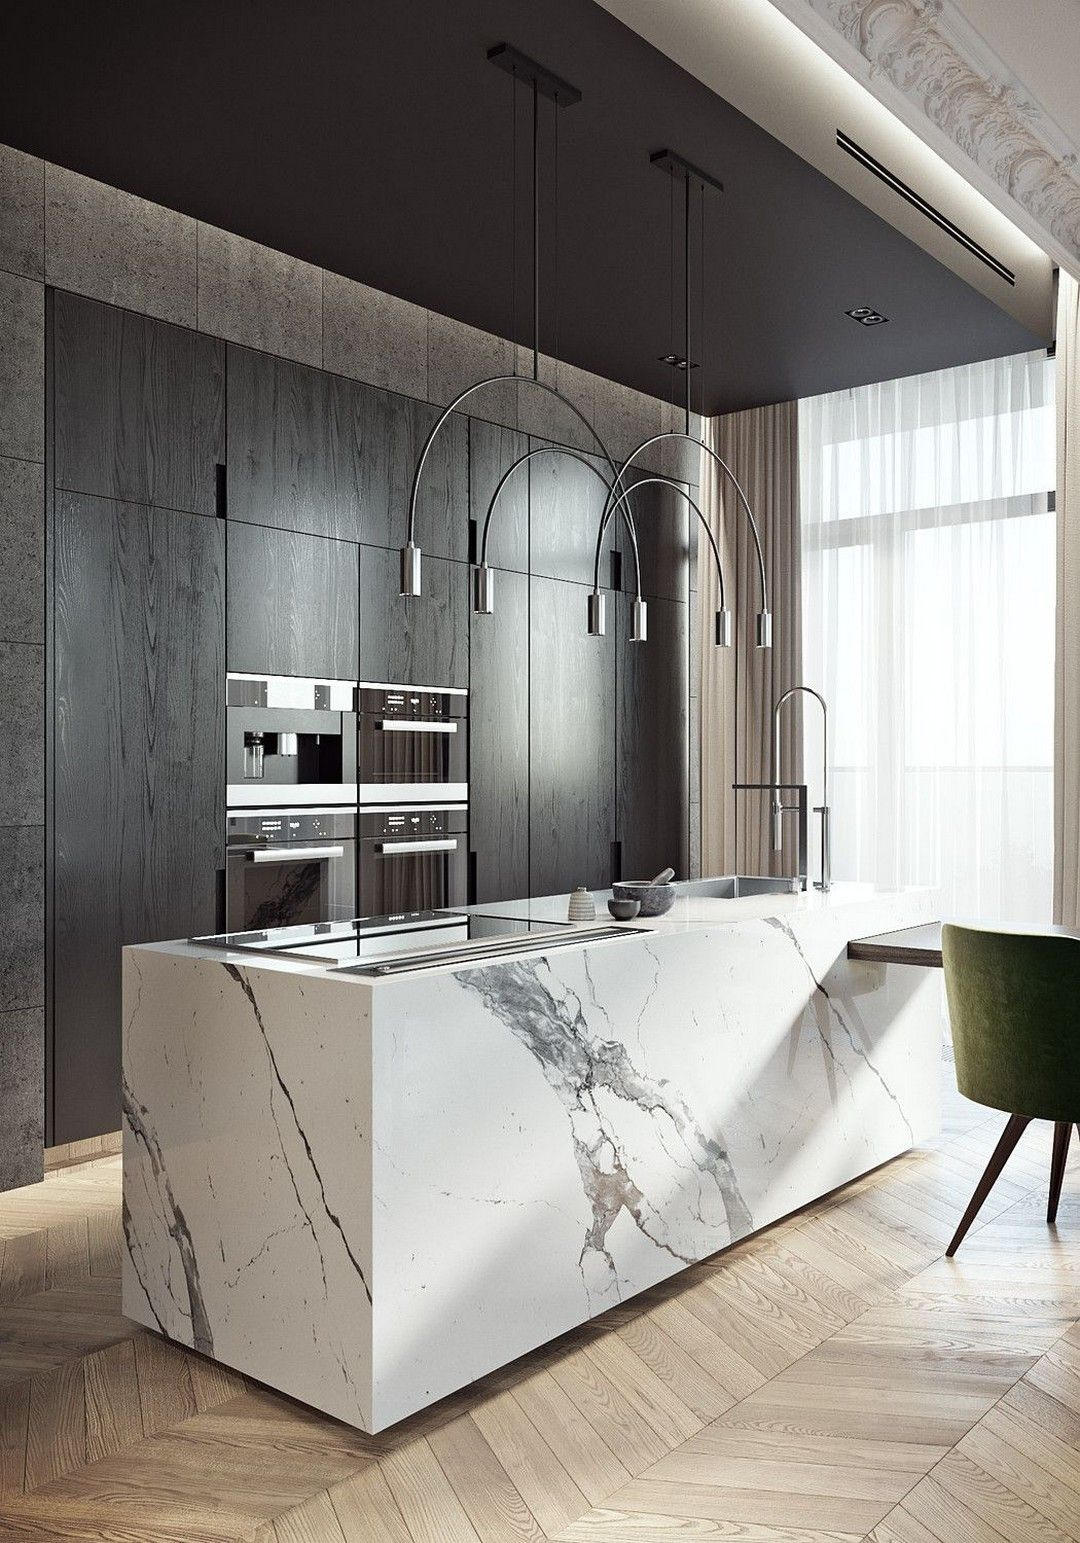 Idee Per La Cucina modern flooring ideas to give your kitchen a new look (with